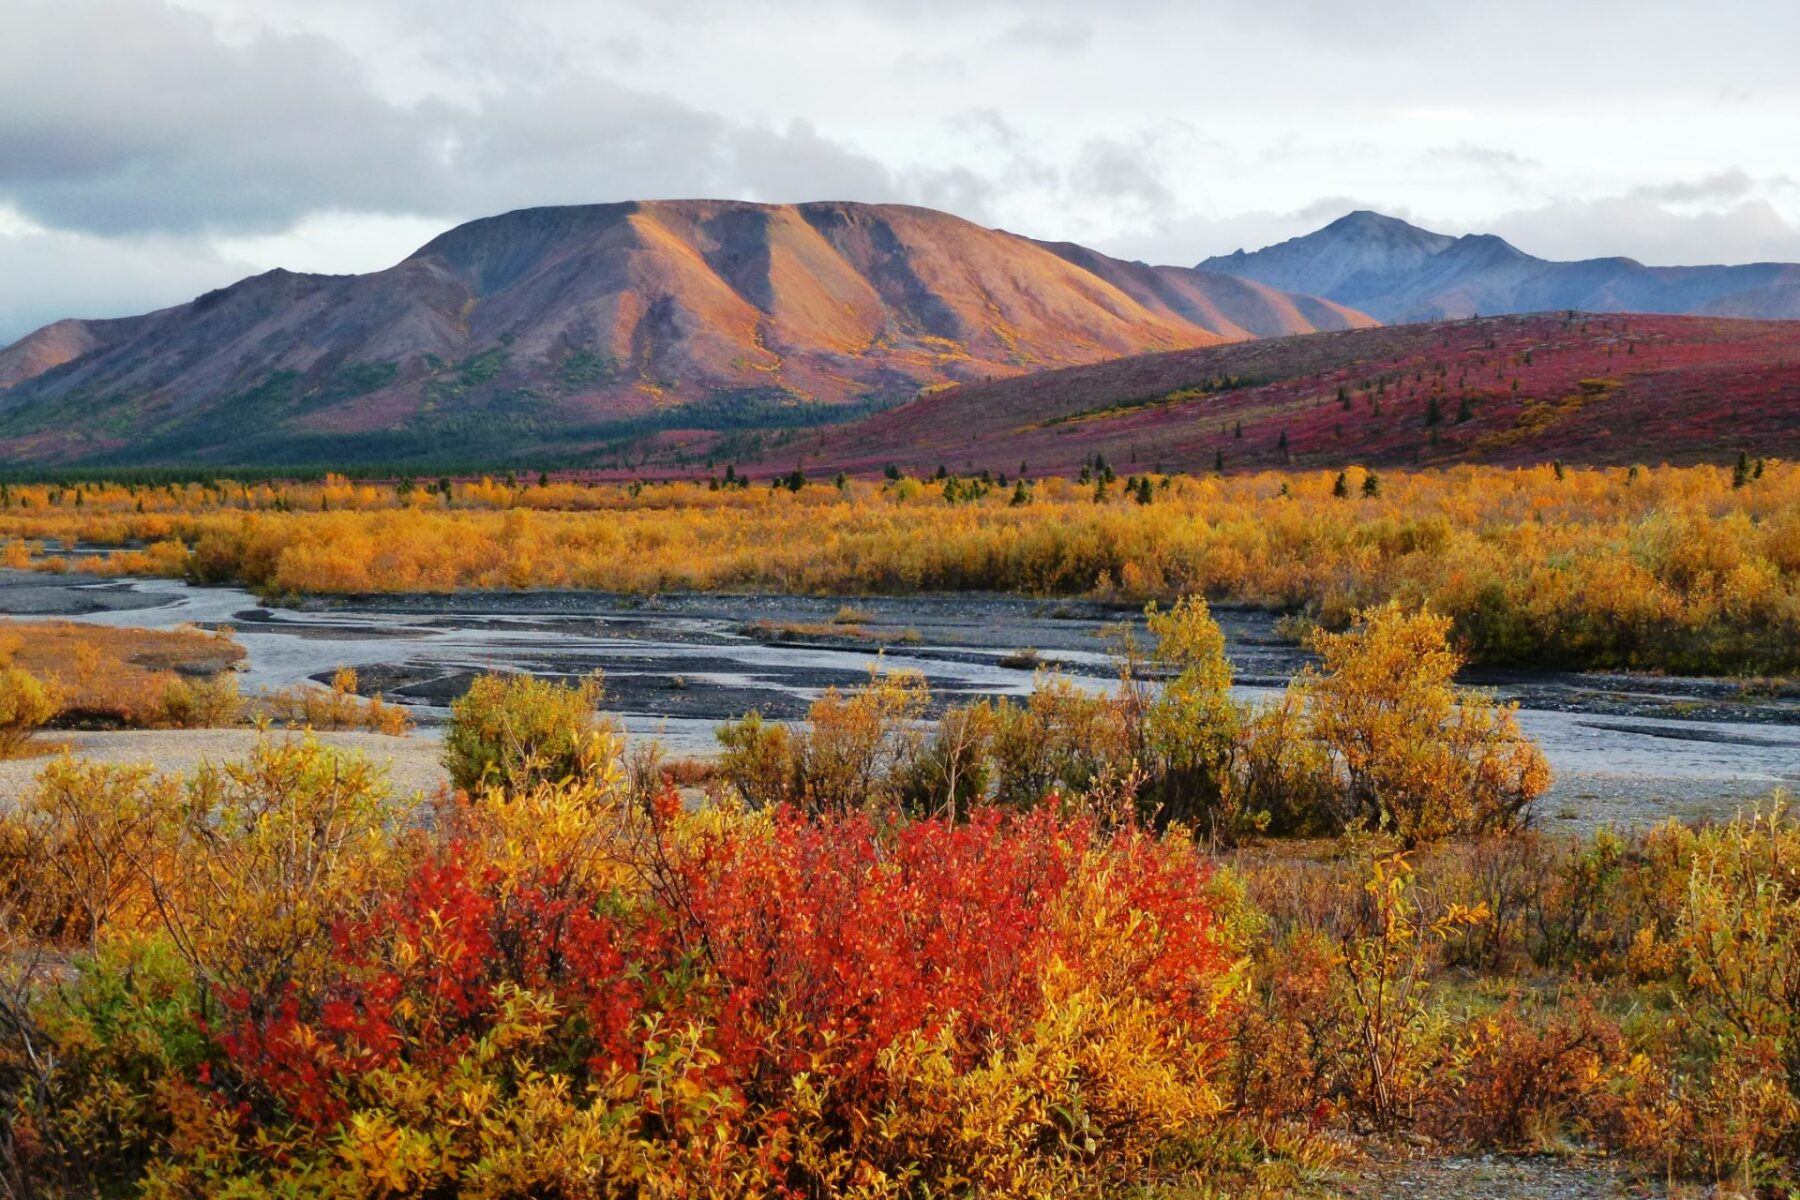 Sunset on fall colored shrubs and hillsides next to the Savage River Campground in Alaska's Denali National Park